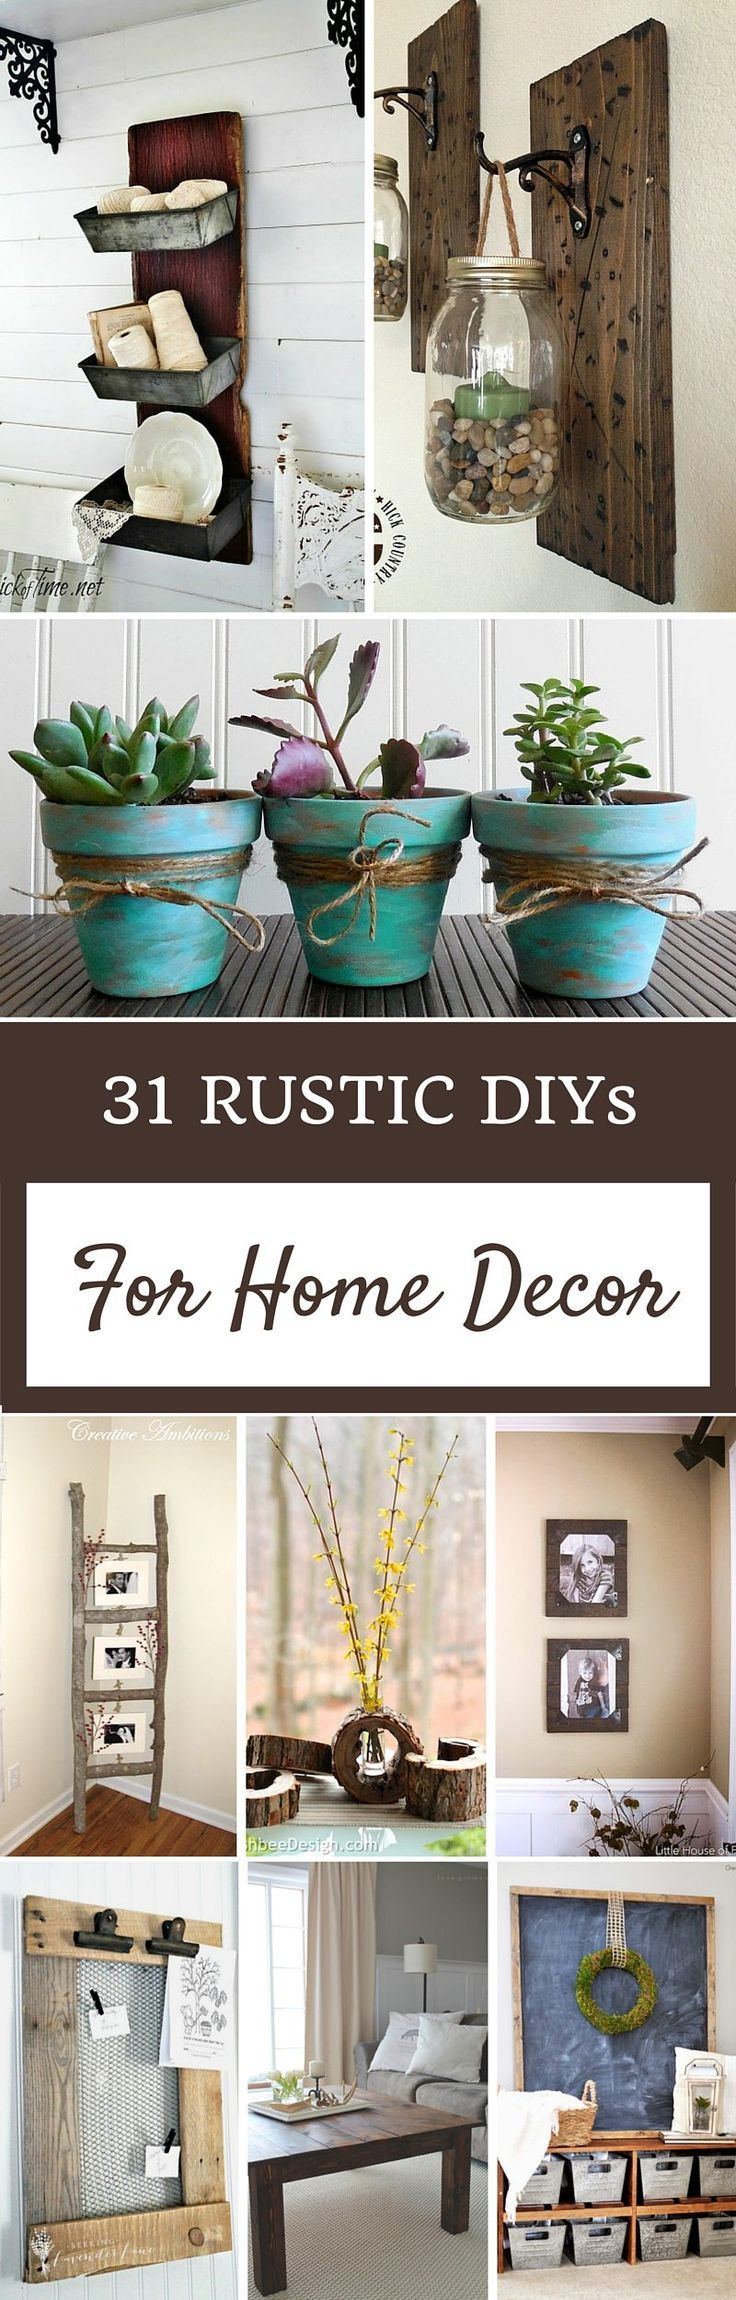 Rustic Decorating Ideas Best 25 Rustic Home Decorating Ideas On Pinterest  Diy House